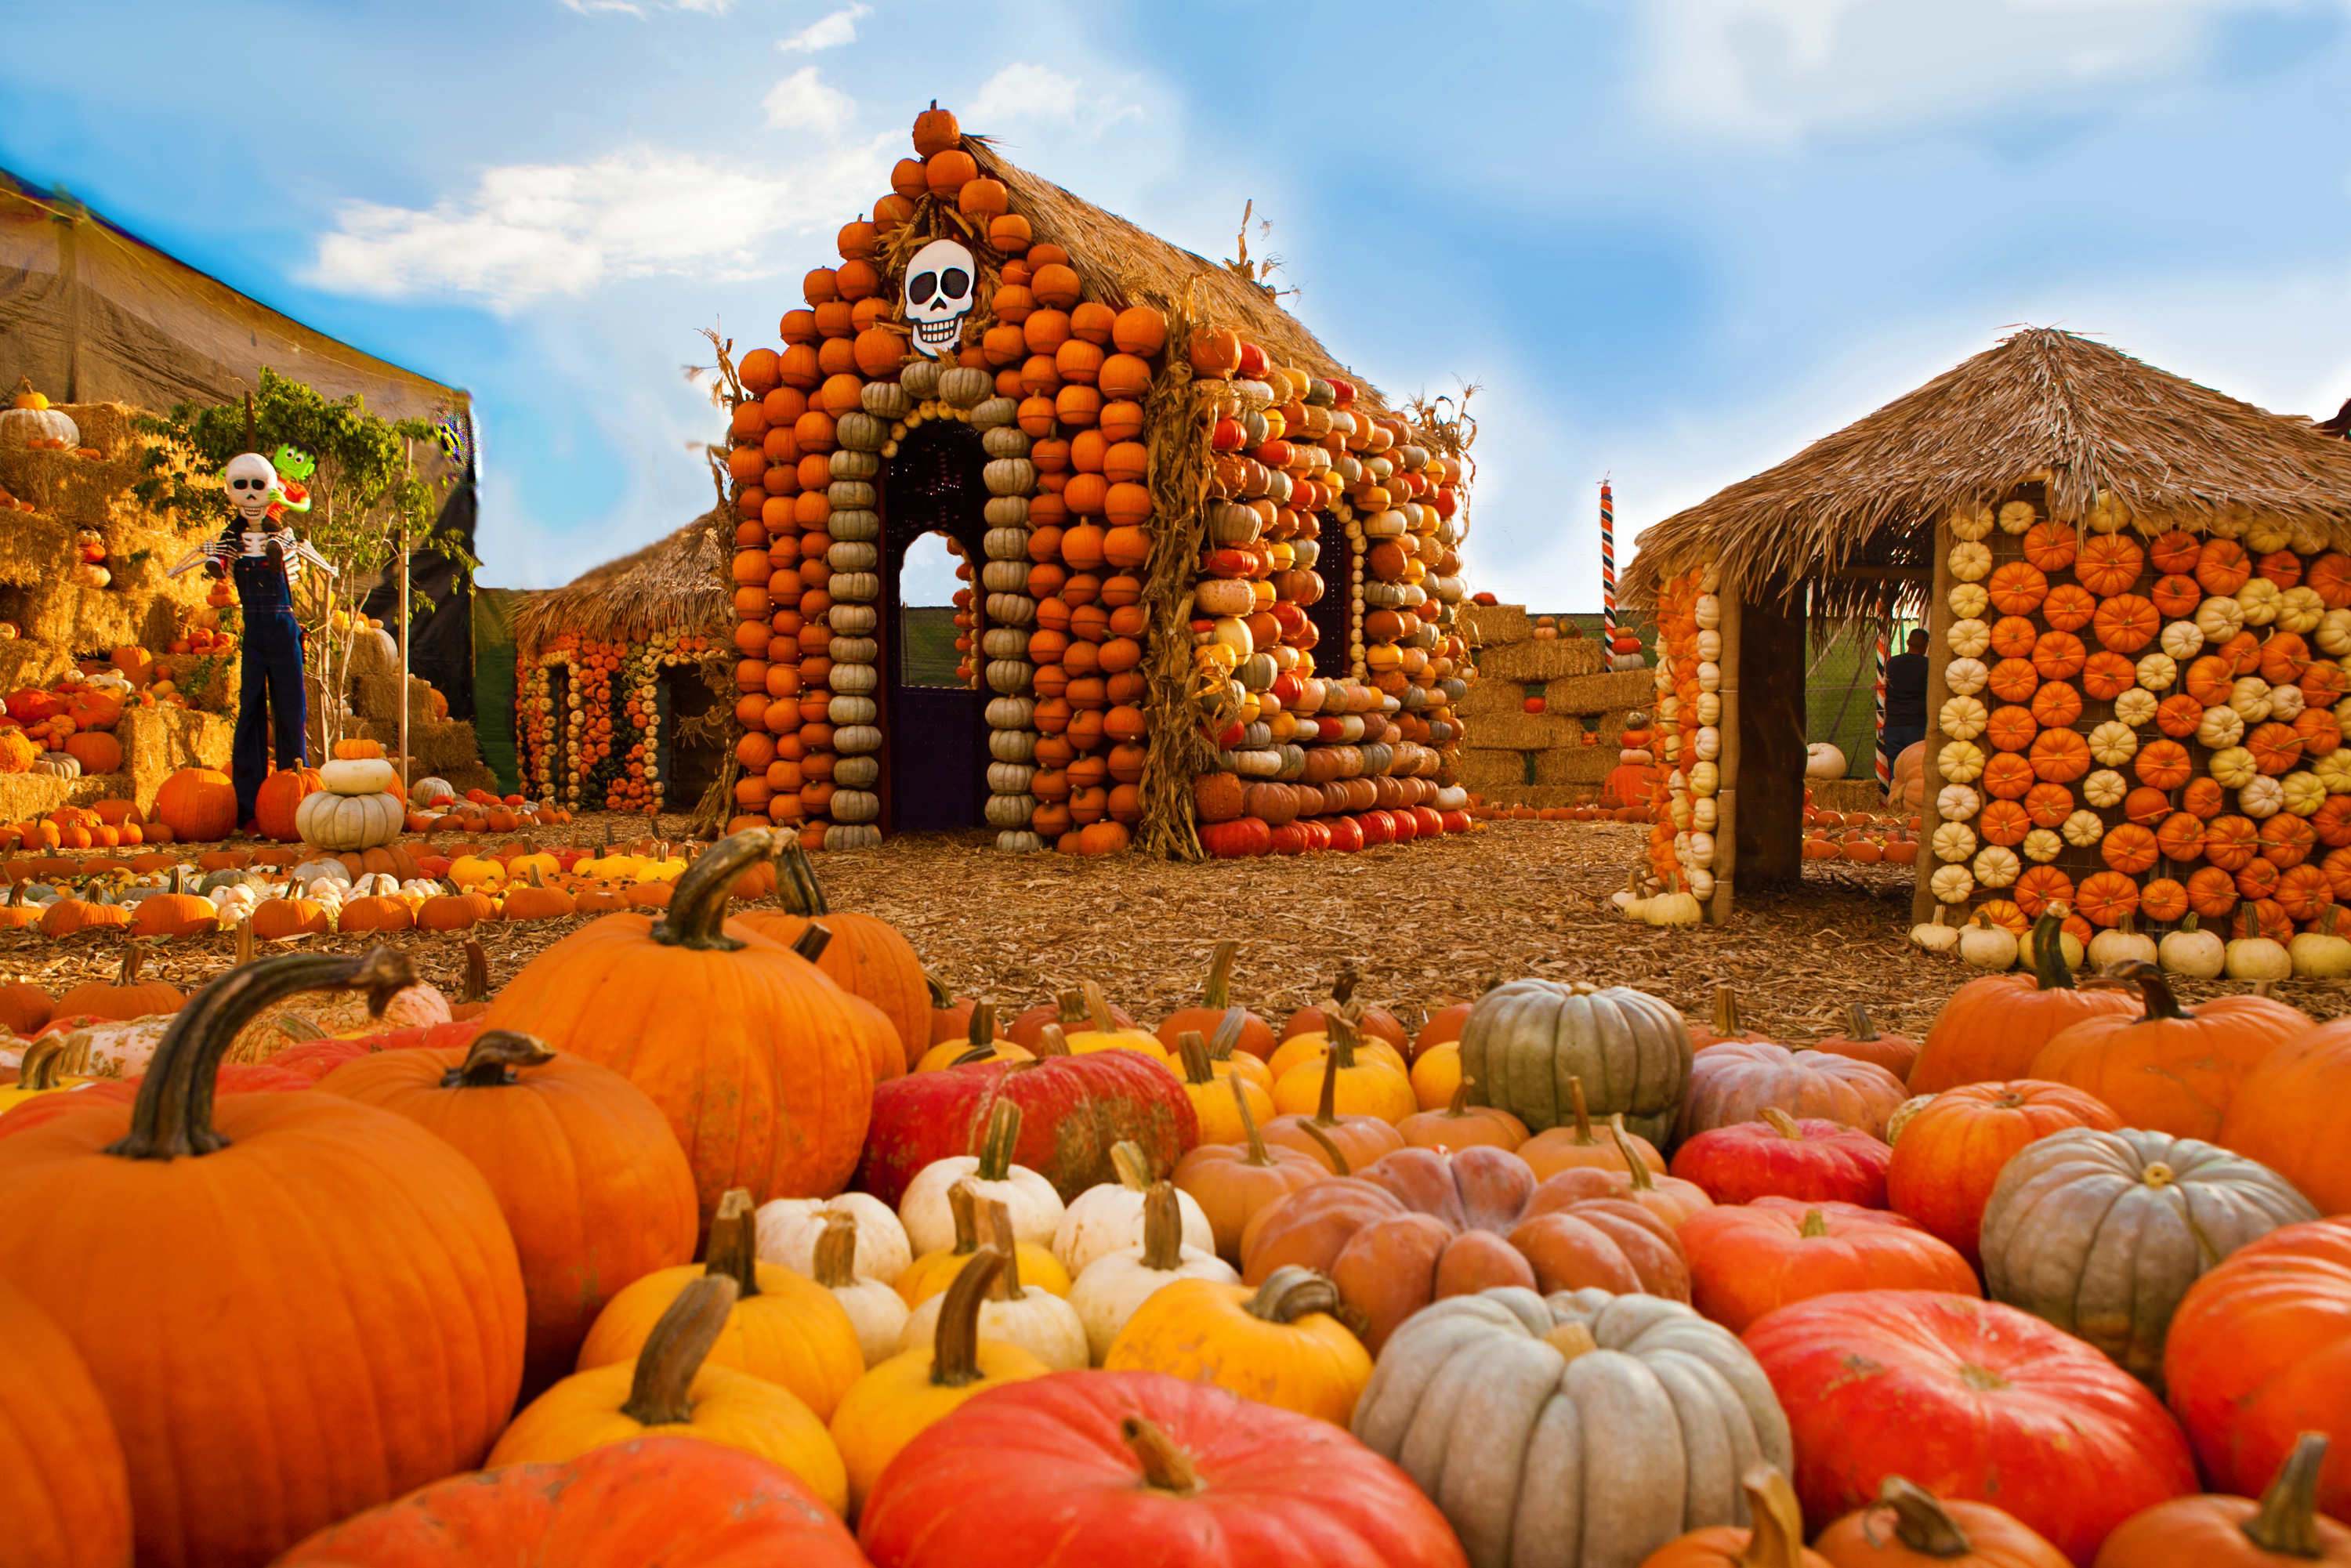 9 Best Pumpkin Patches In Los Angeles For Halloween Fun